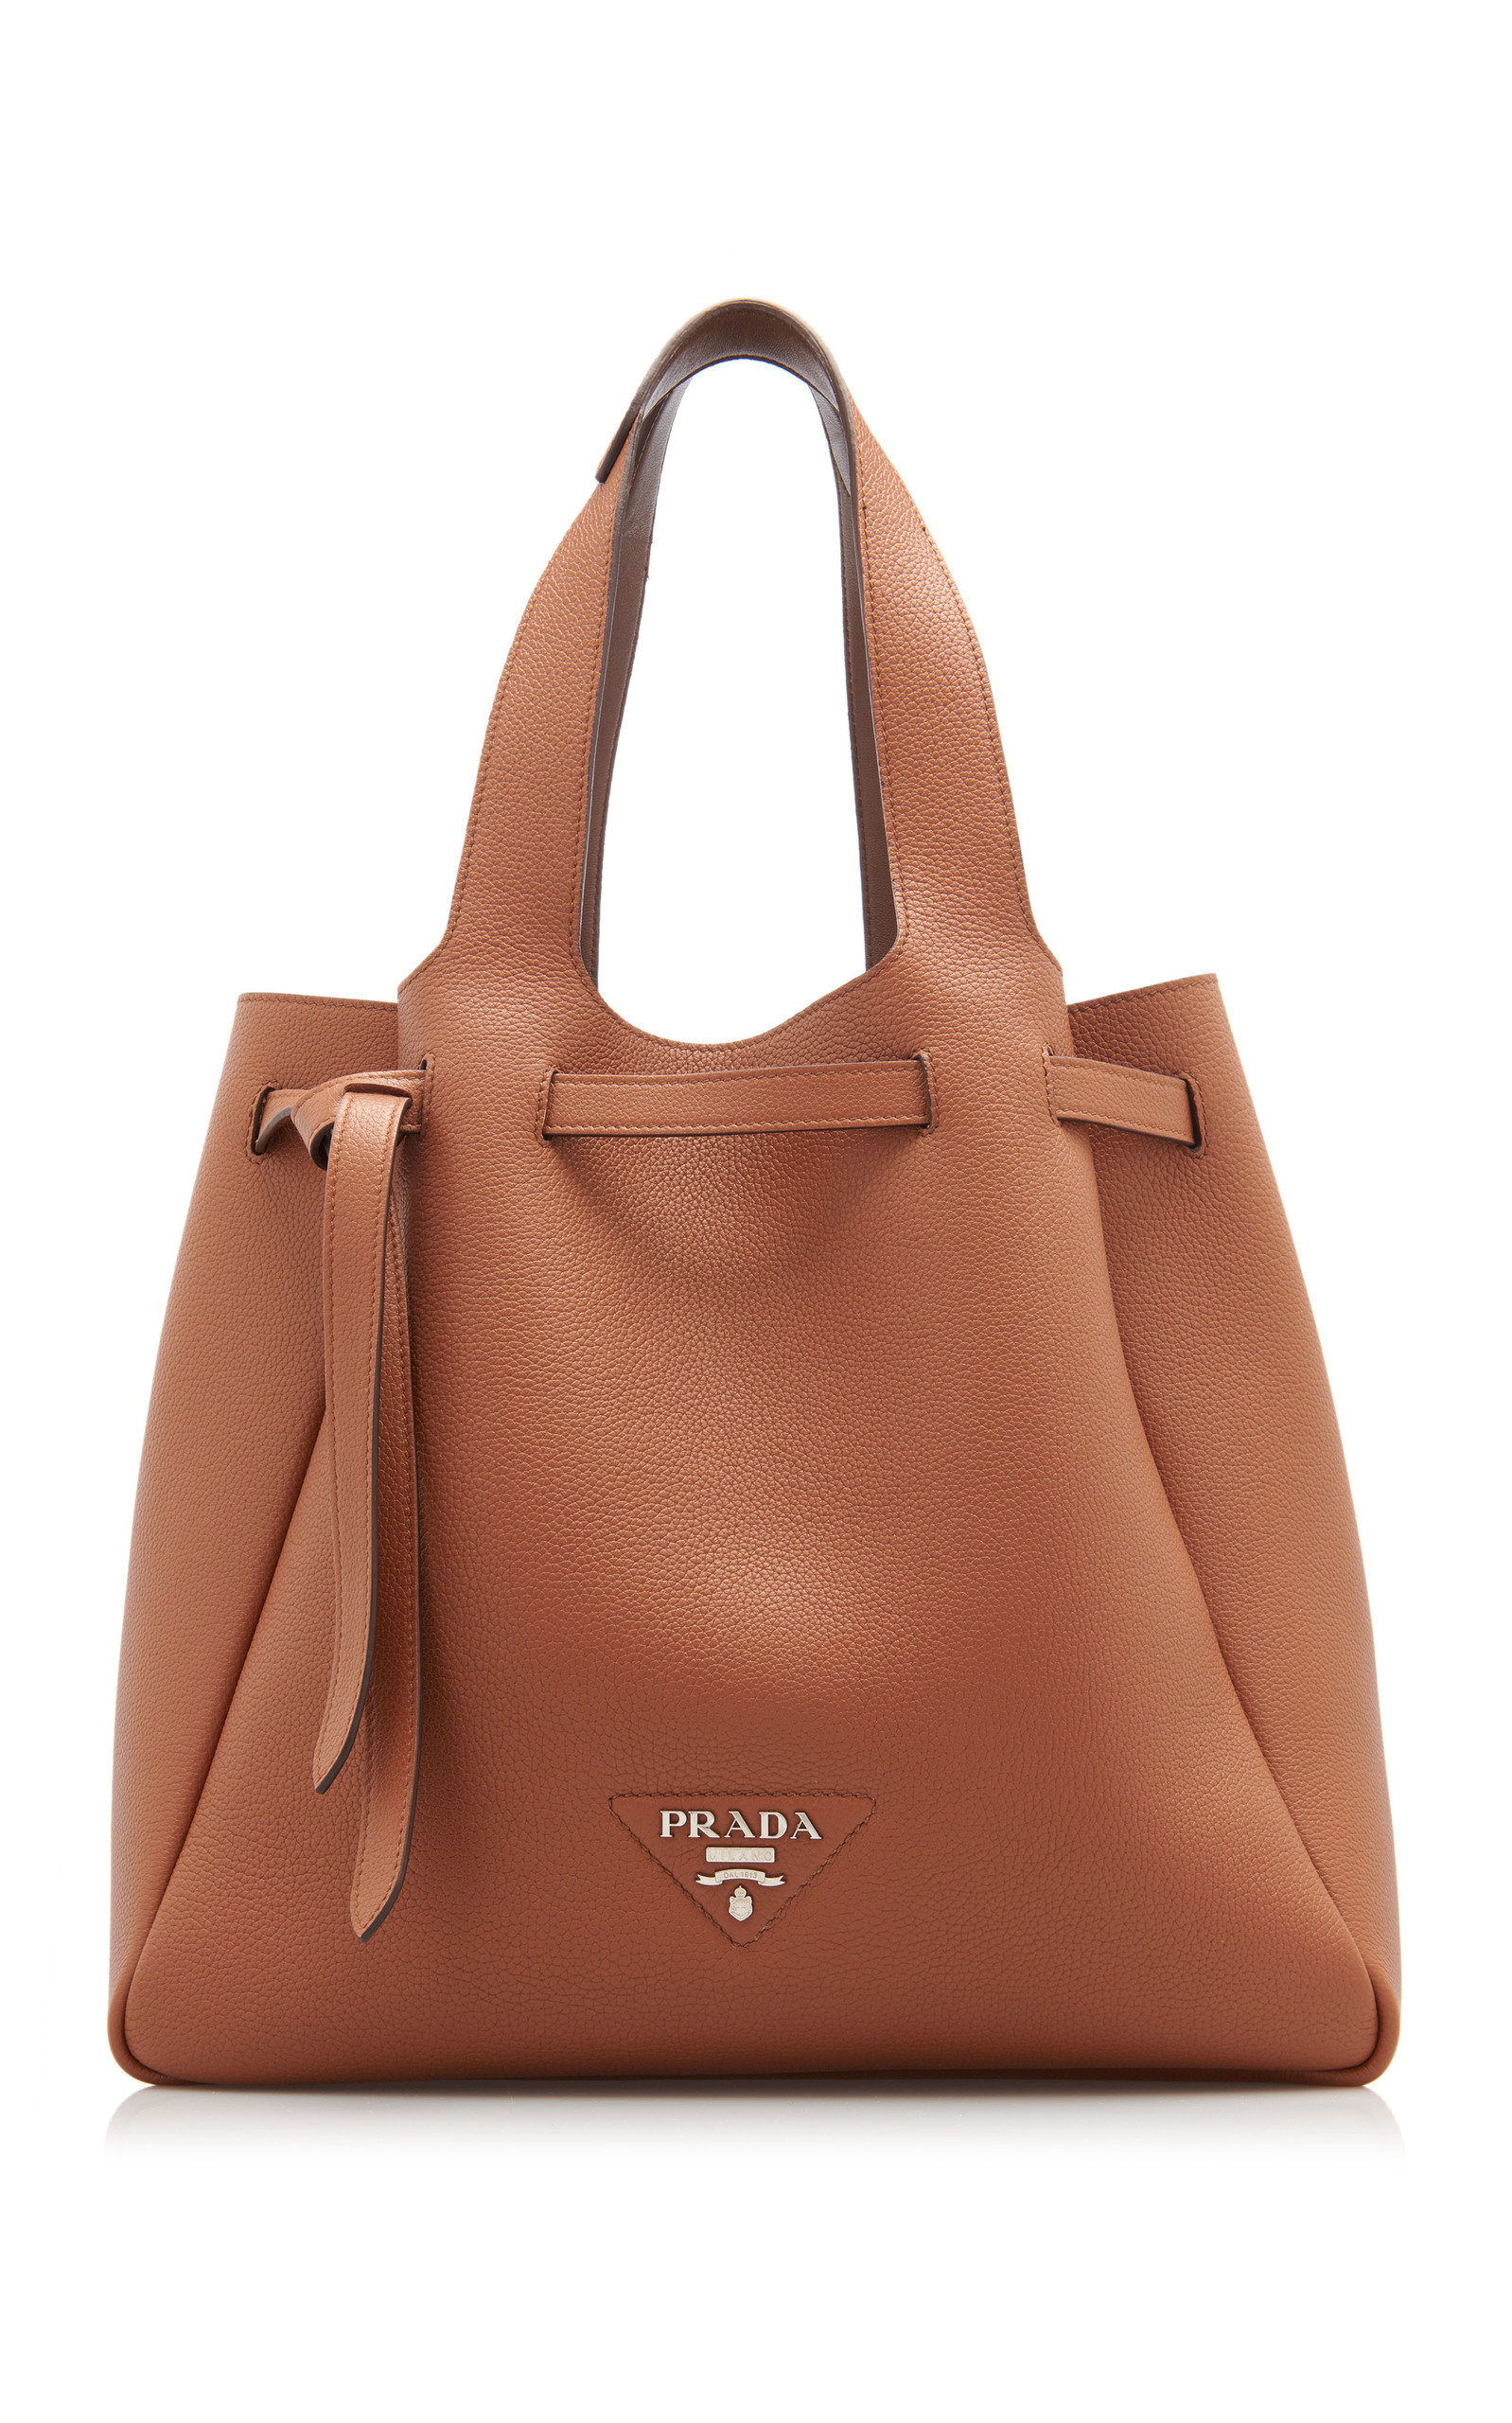 Prada LEATHER DRAWSTRING TOTE